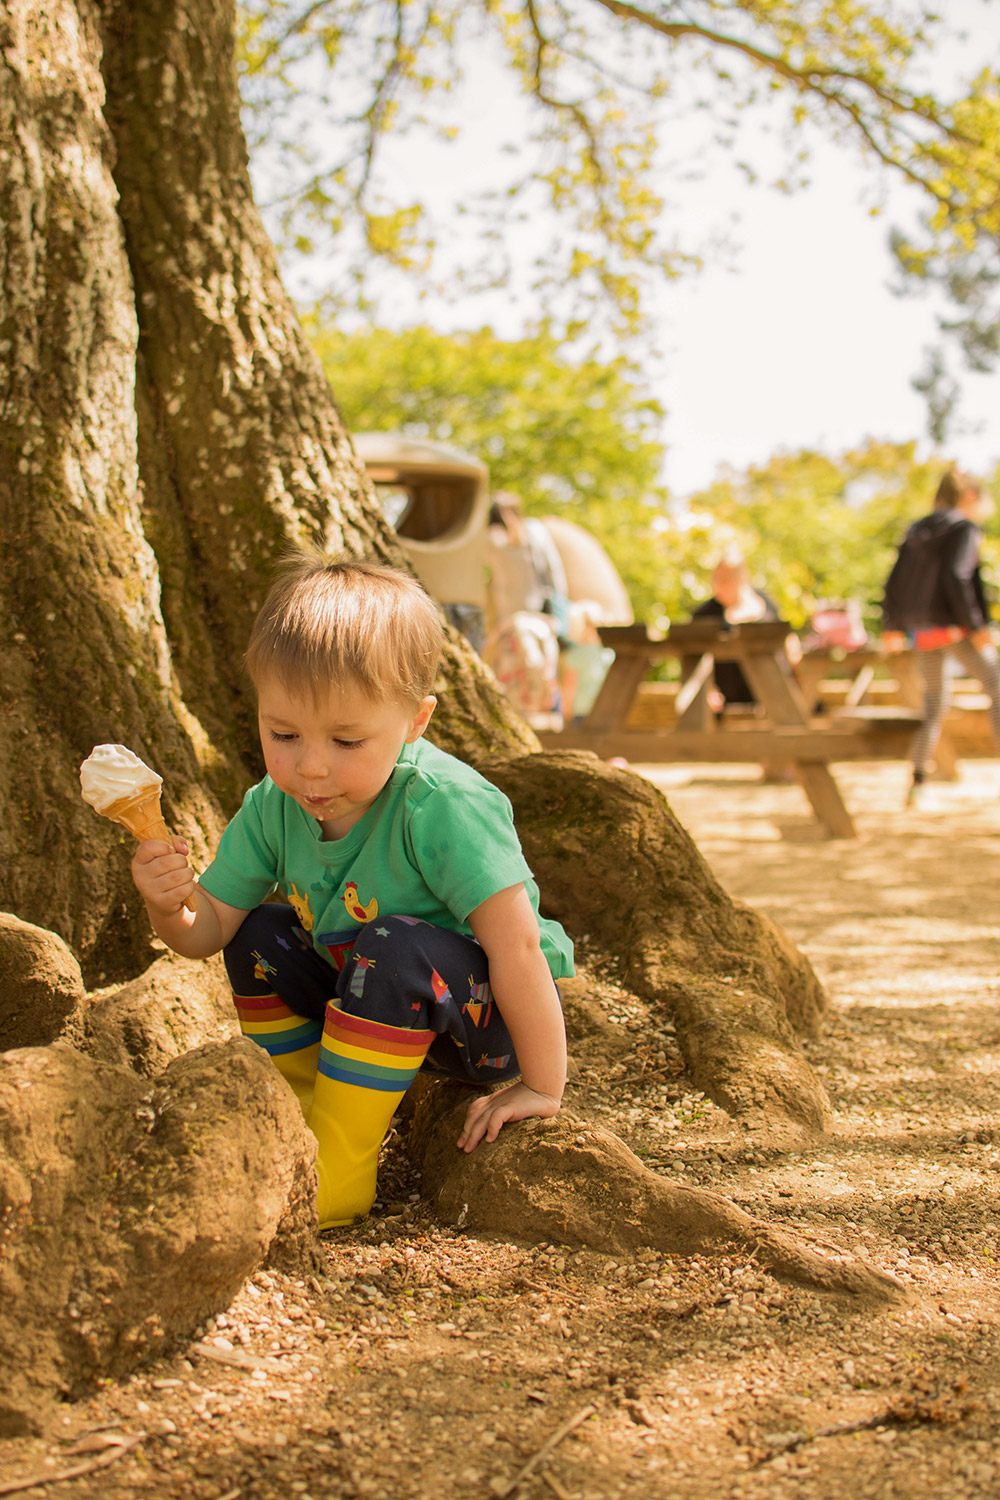 3 year old pre-schooler boy eating ice-cream and playing on the trees wearing Little Bird rainbow wellies and Frugi tractor t-shirt at Cotswold Wildlife Park with family